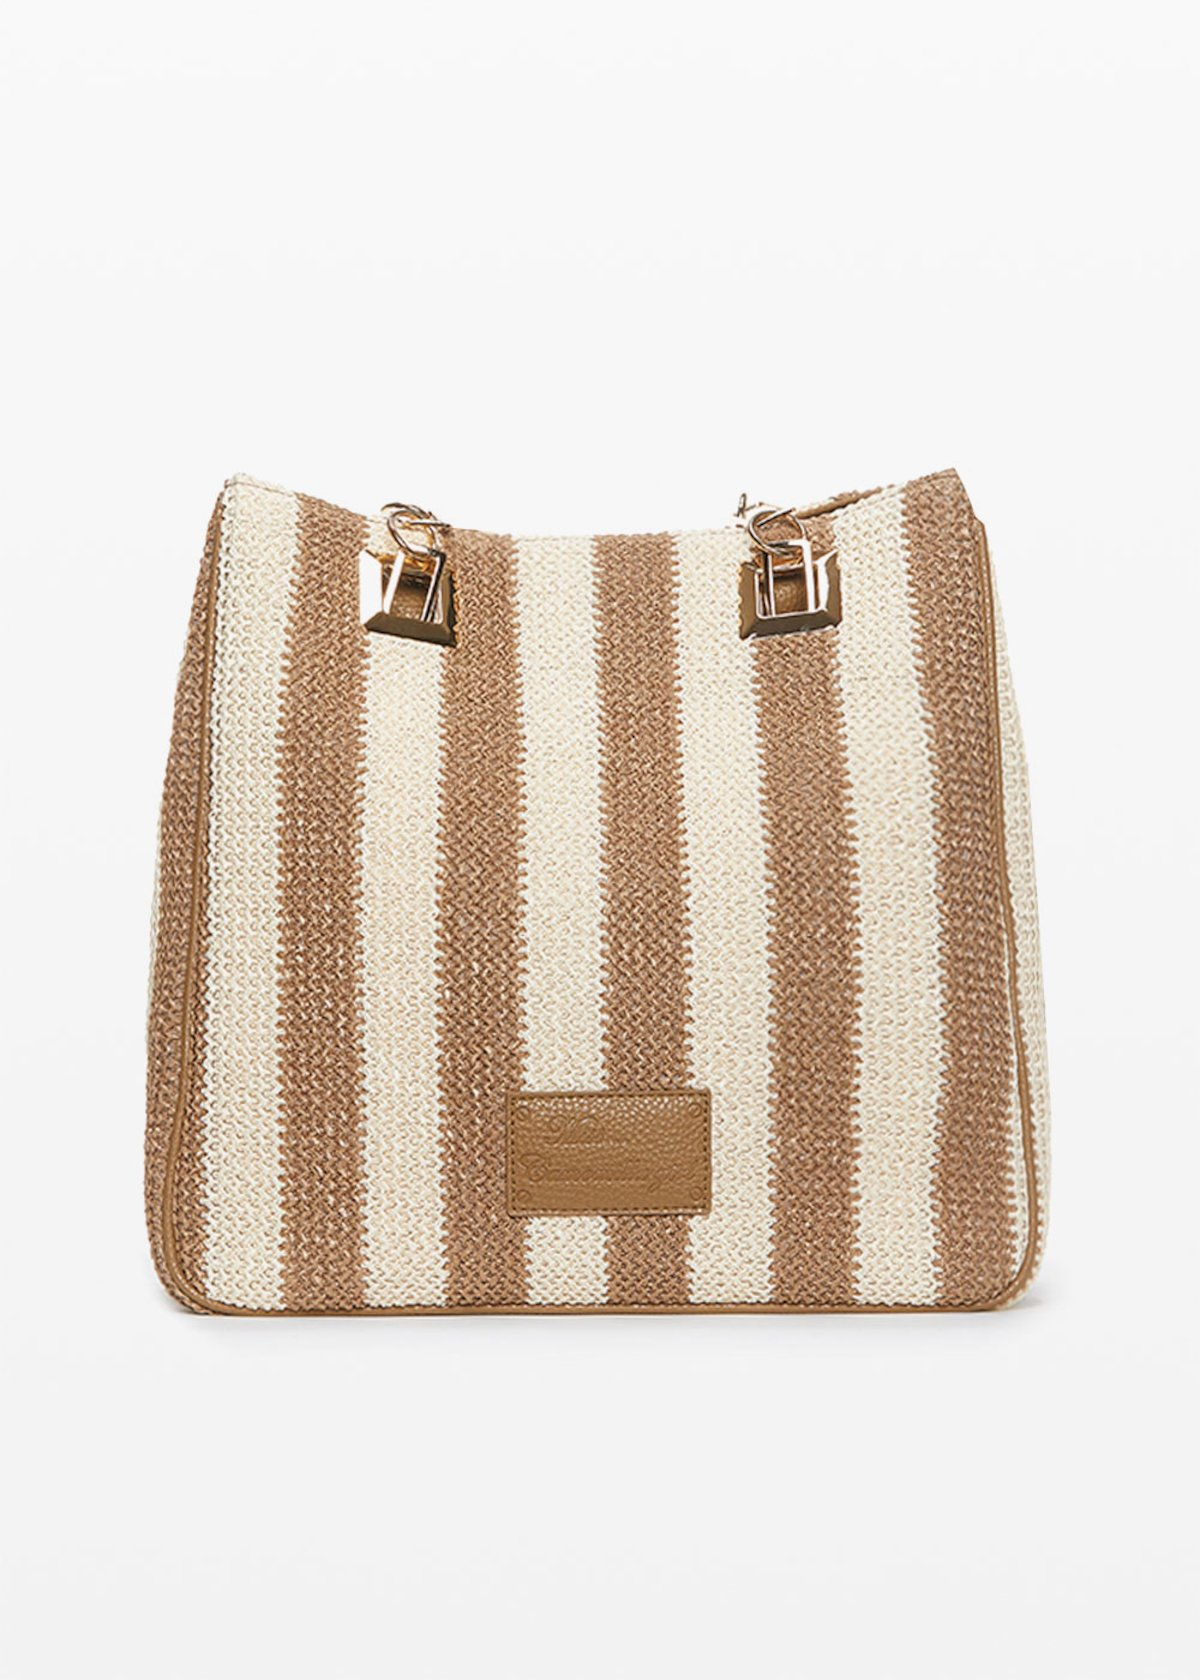 Mmissstri bag with stripes pattern - Desert / White Stripes - Woman - Category image